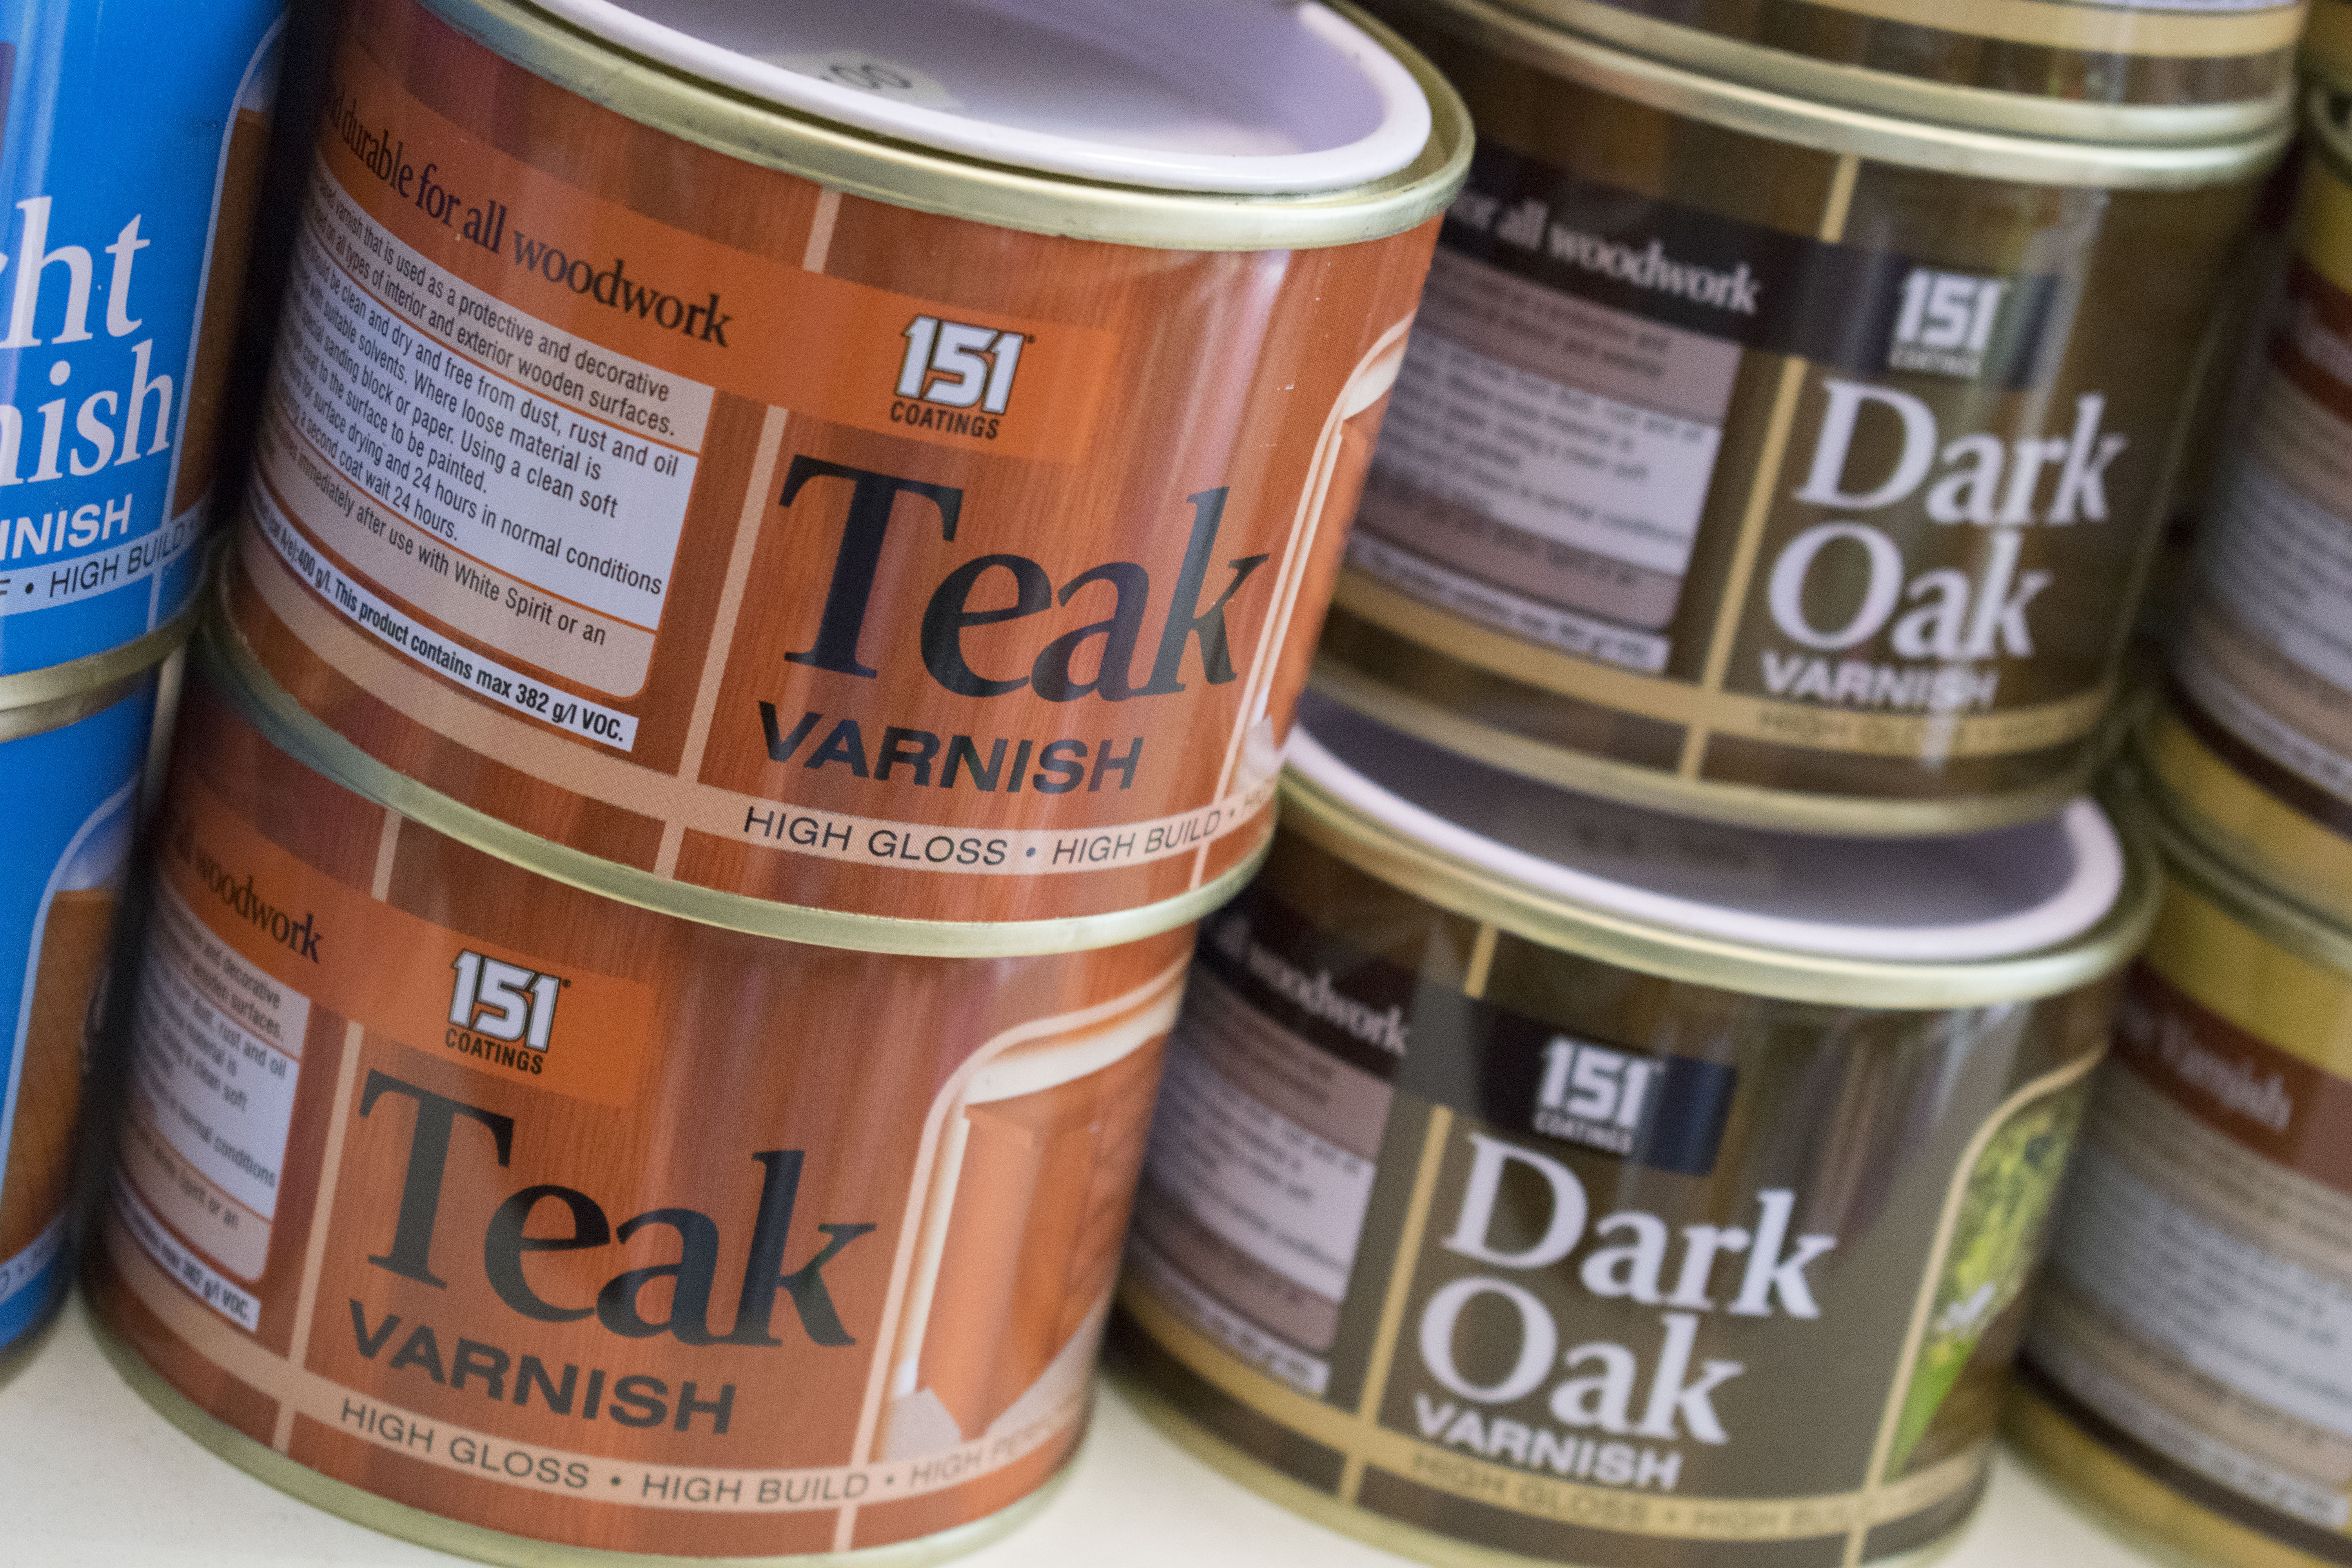 Tins of varnish